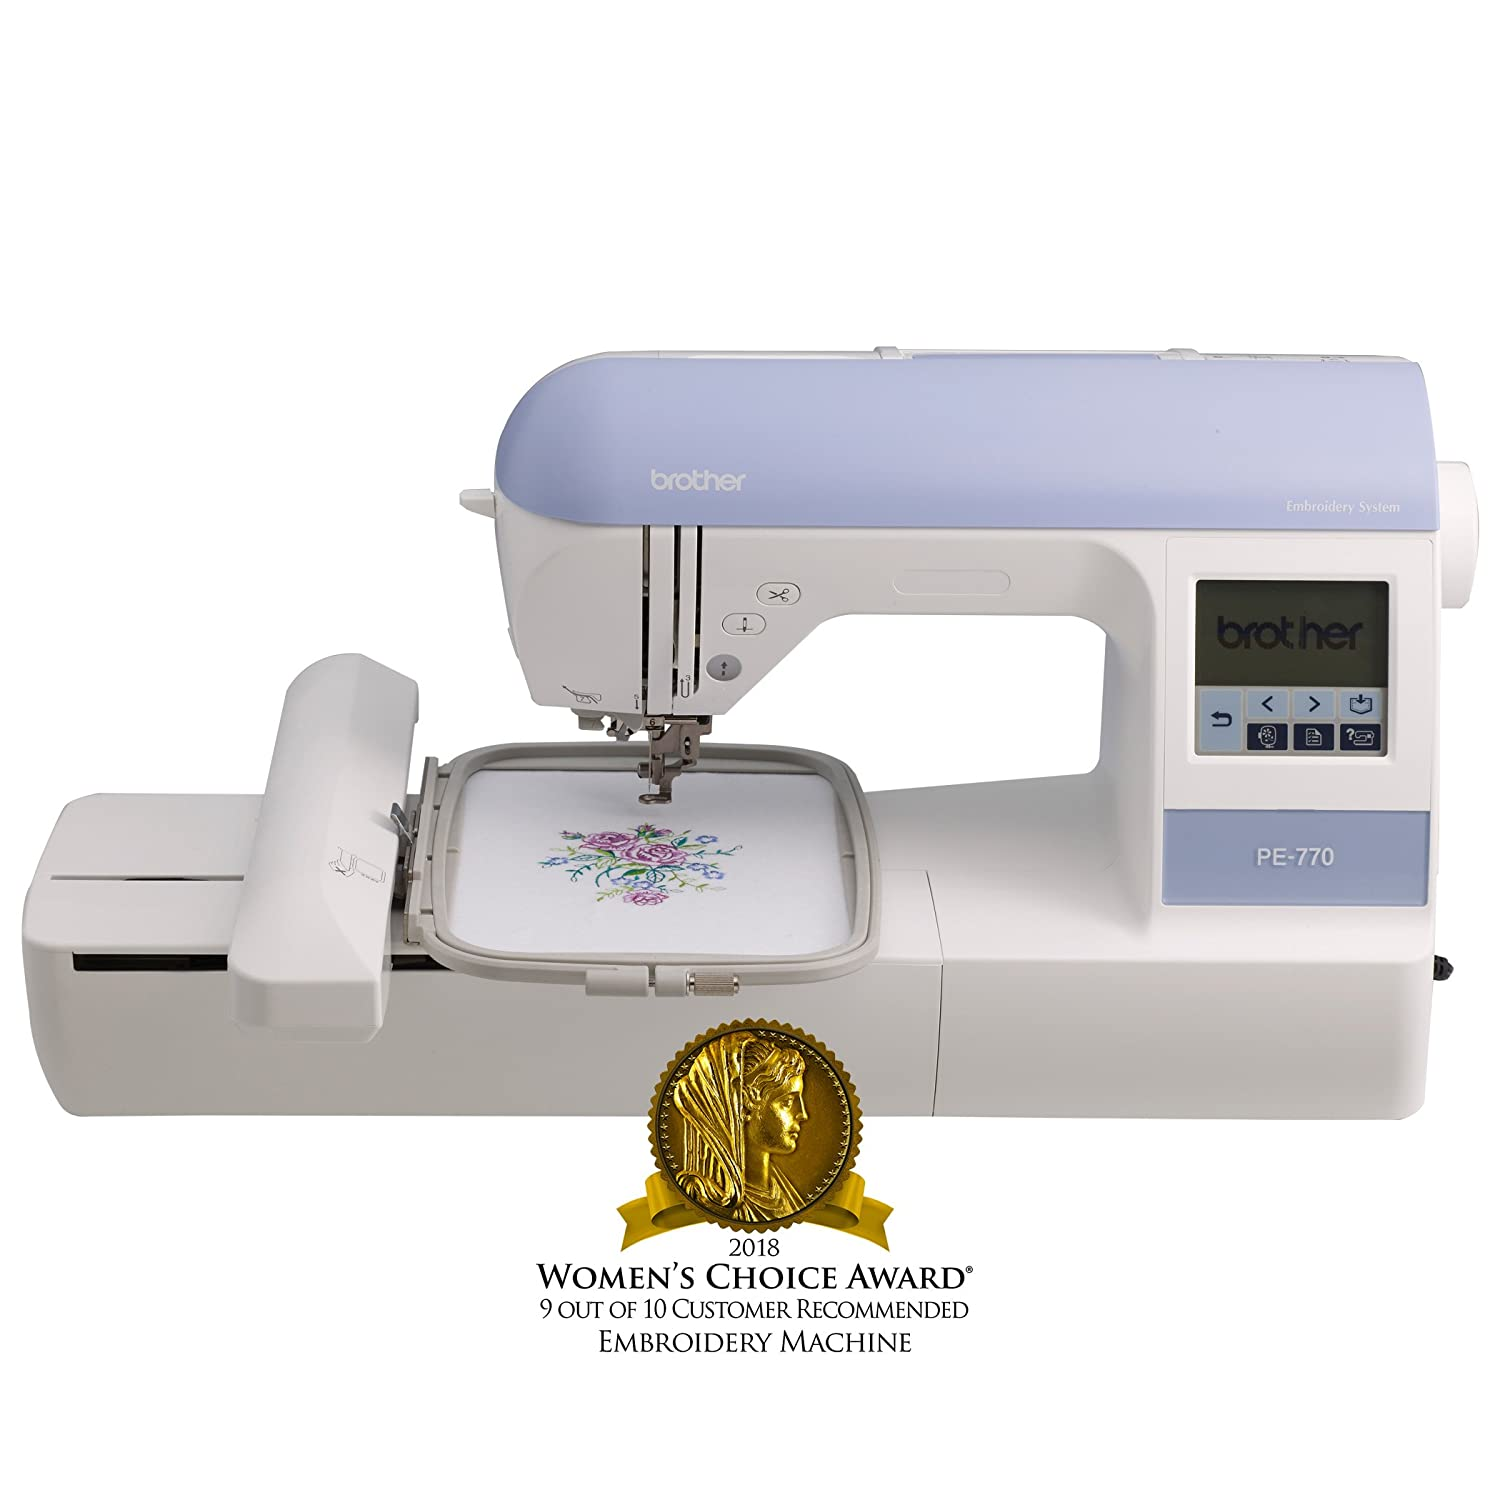 "Amazon.com: Brother Embroidery Machine, PE770, 5"" x 7"" Embroidery Machine  with Built-in Memory, USB Port, 6 Lettering Fonts, 136 Built-in Designs"